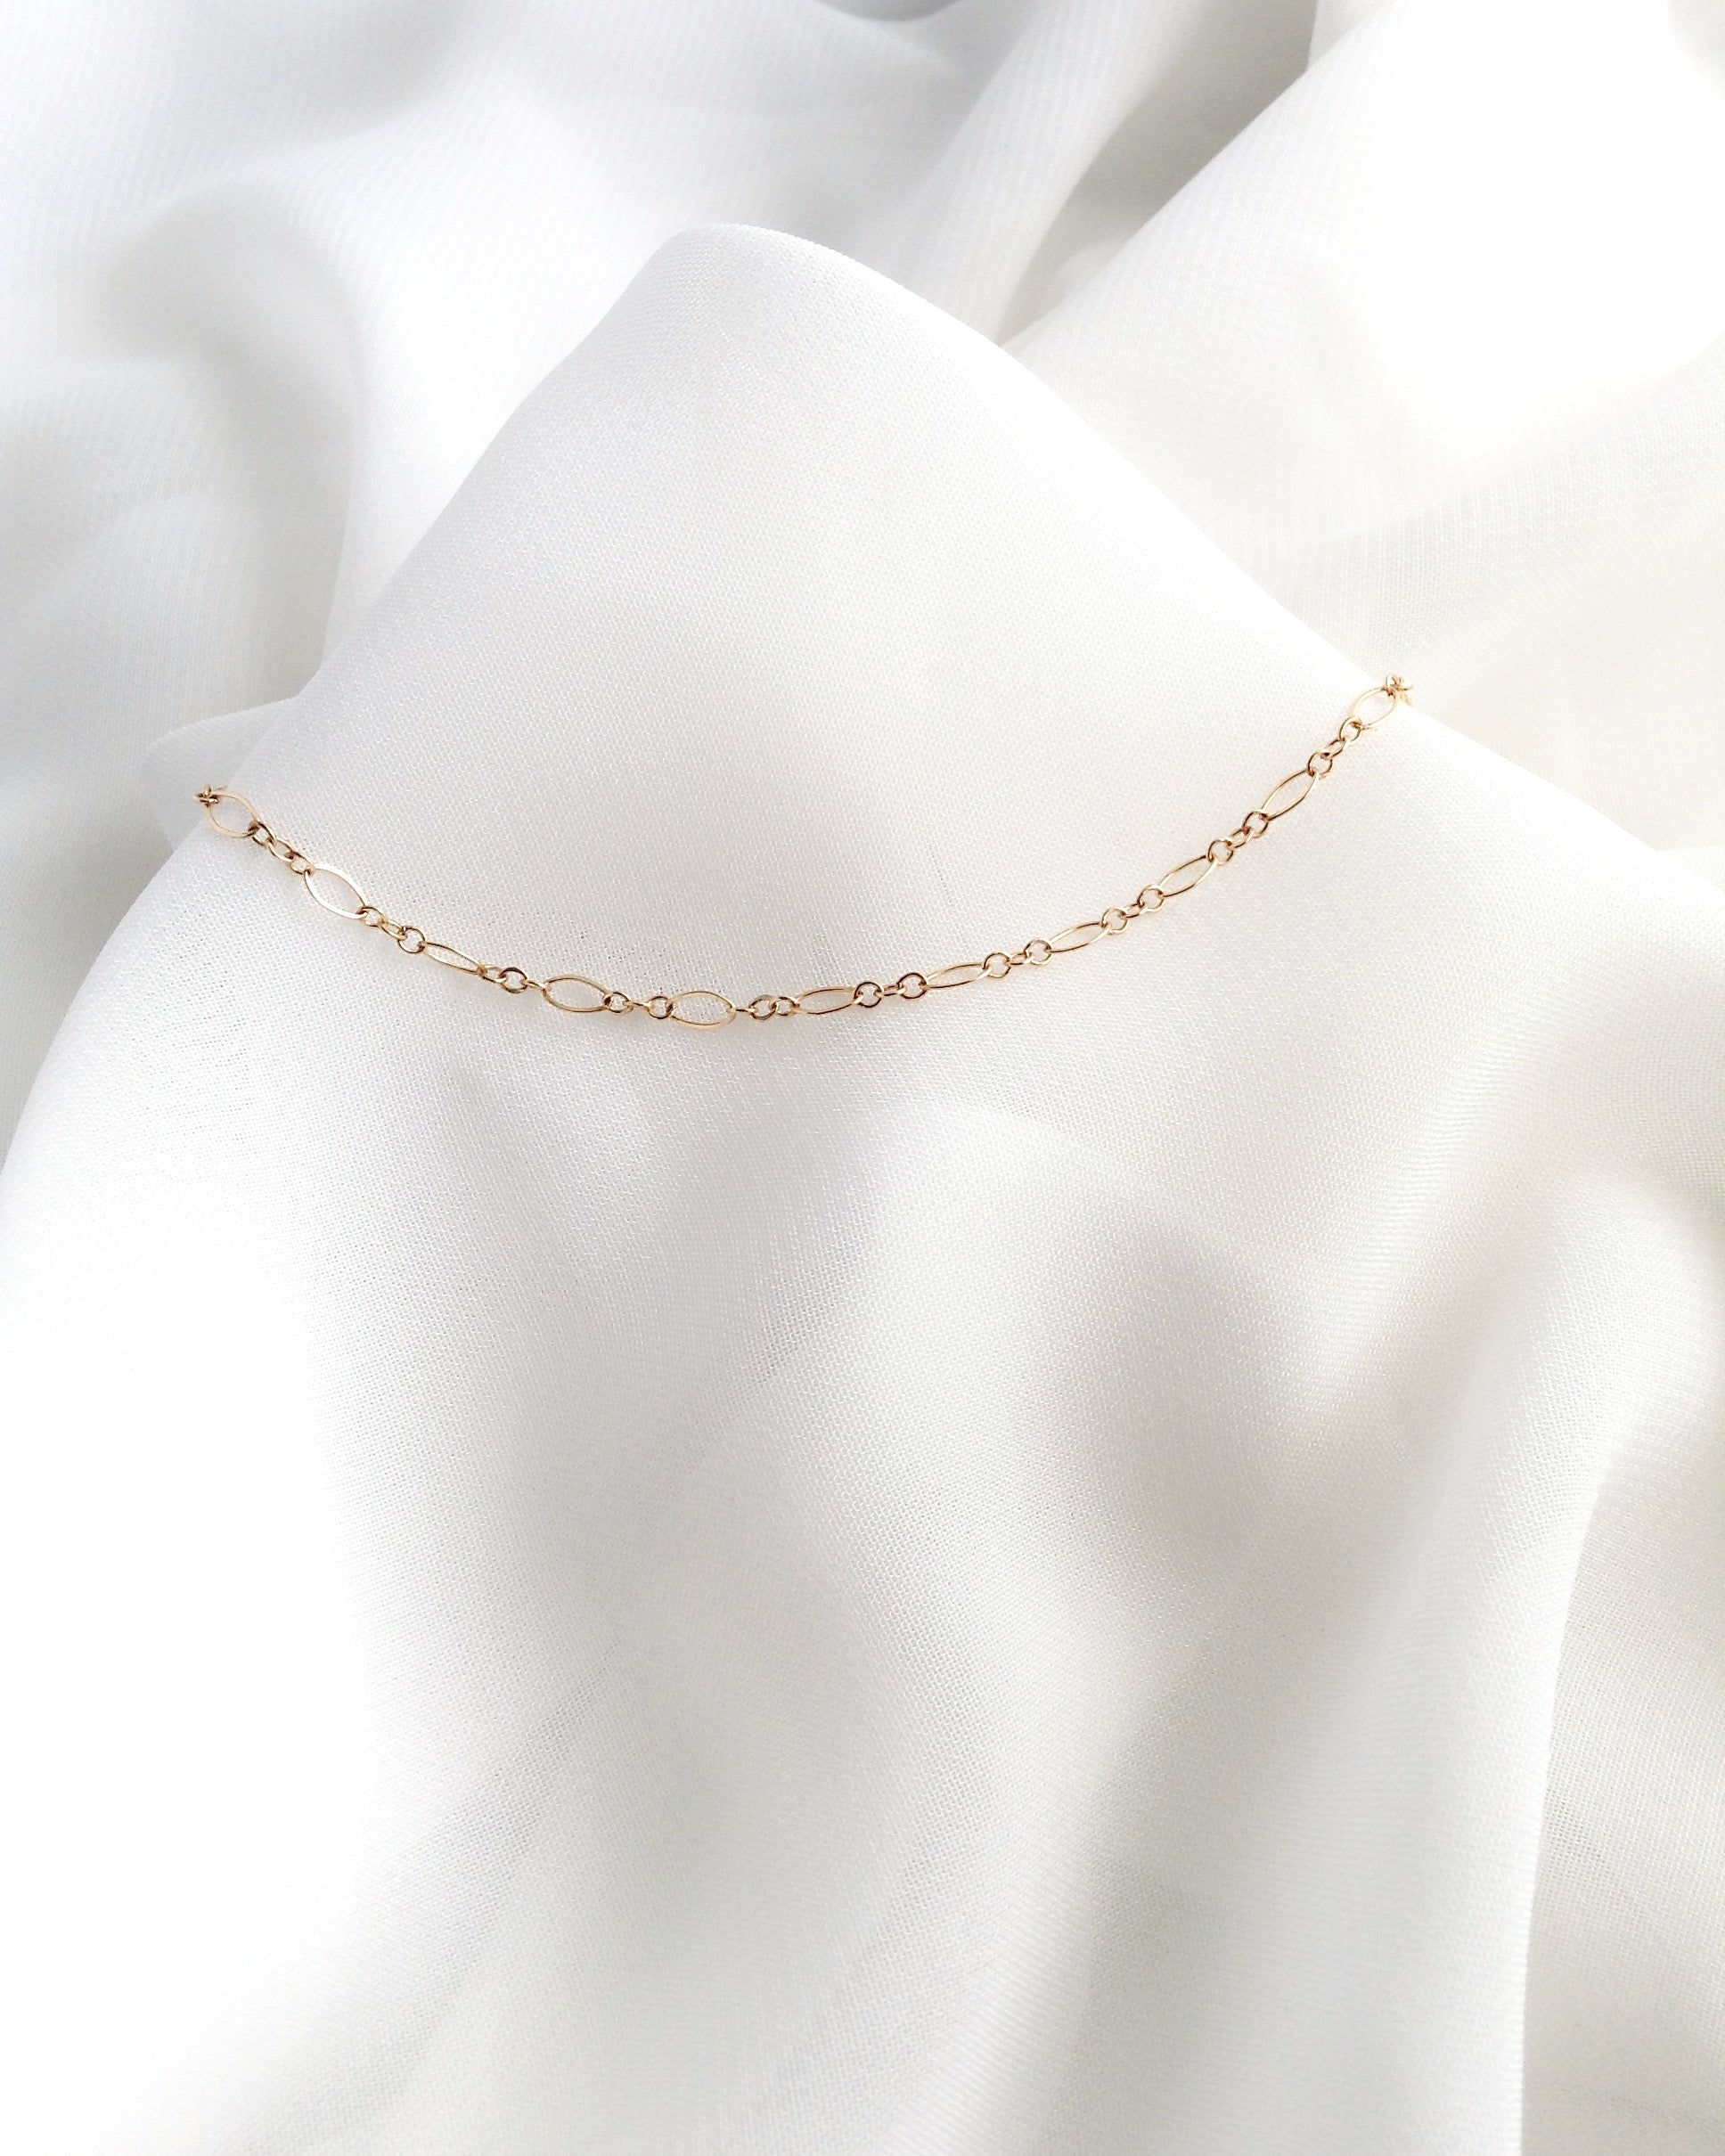 Delicate Minimalist Anklet | Dainty Gold Anklet | Elegant Chain Anklet | IB Jewelry